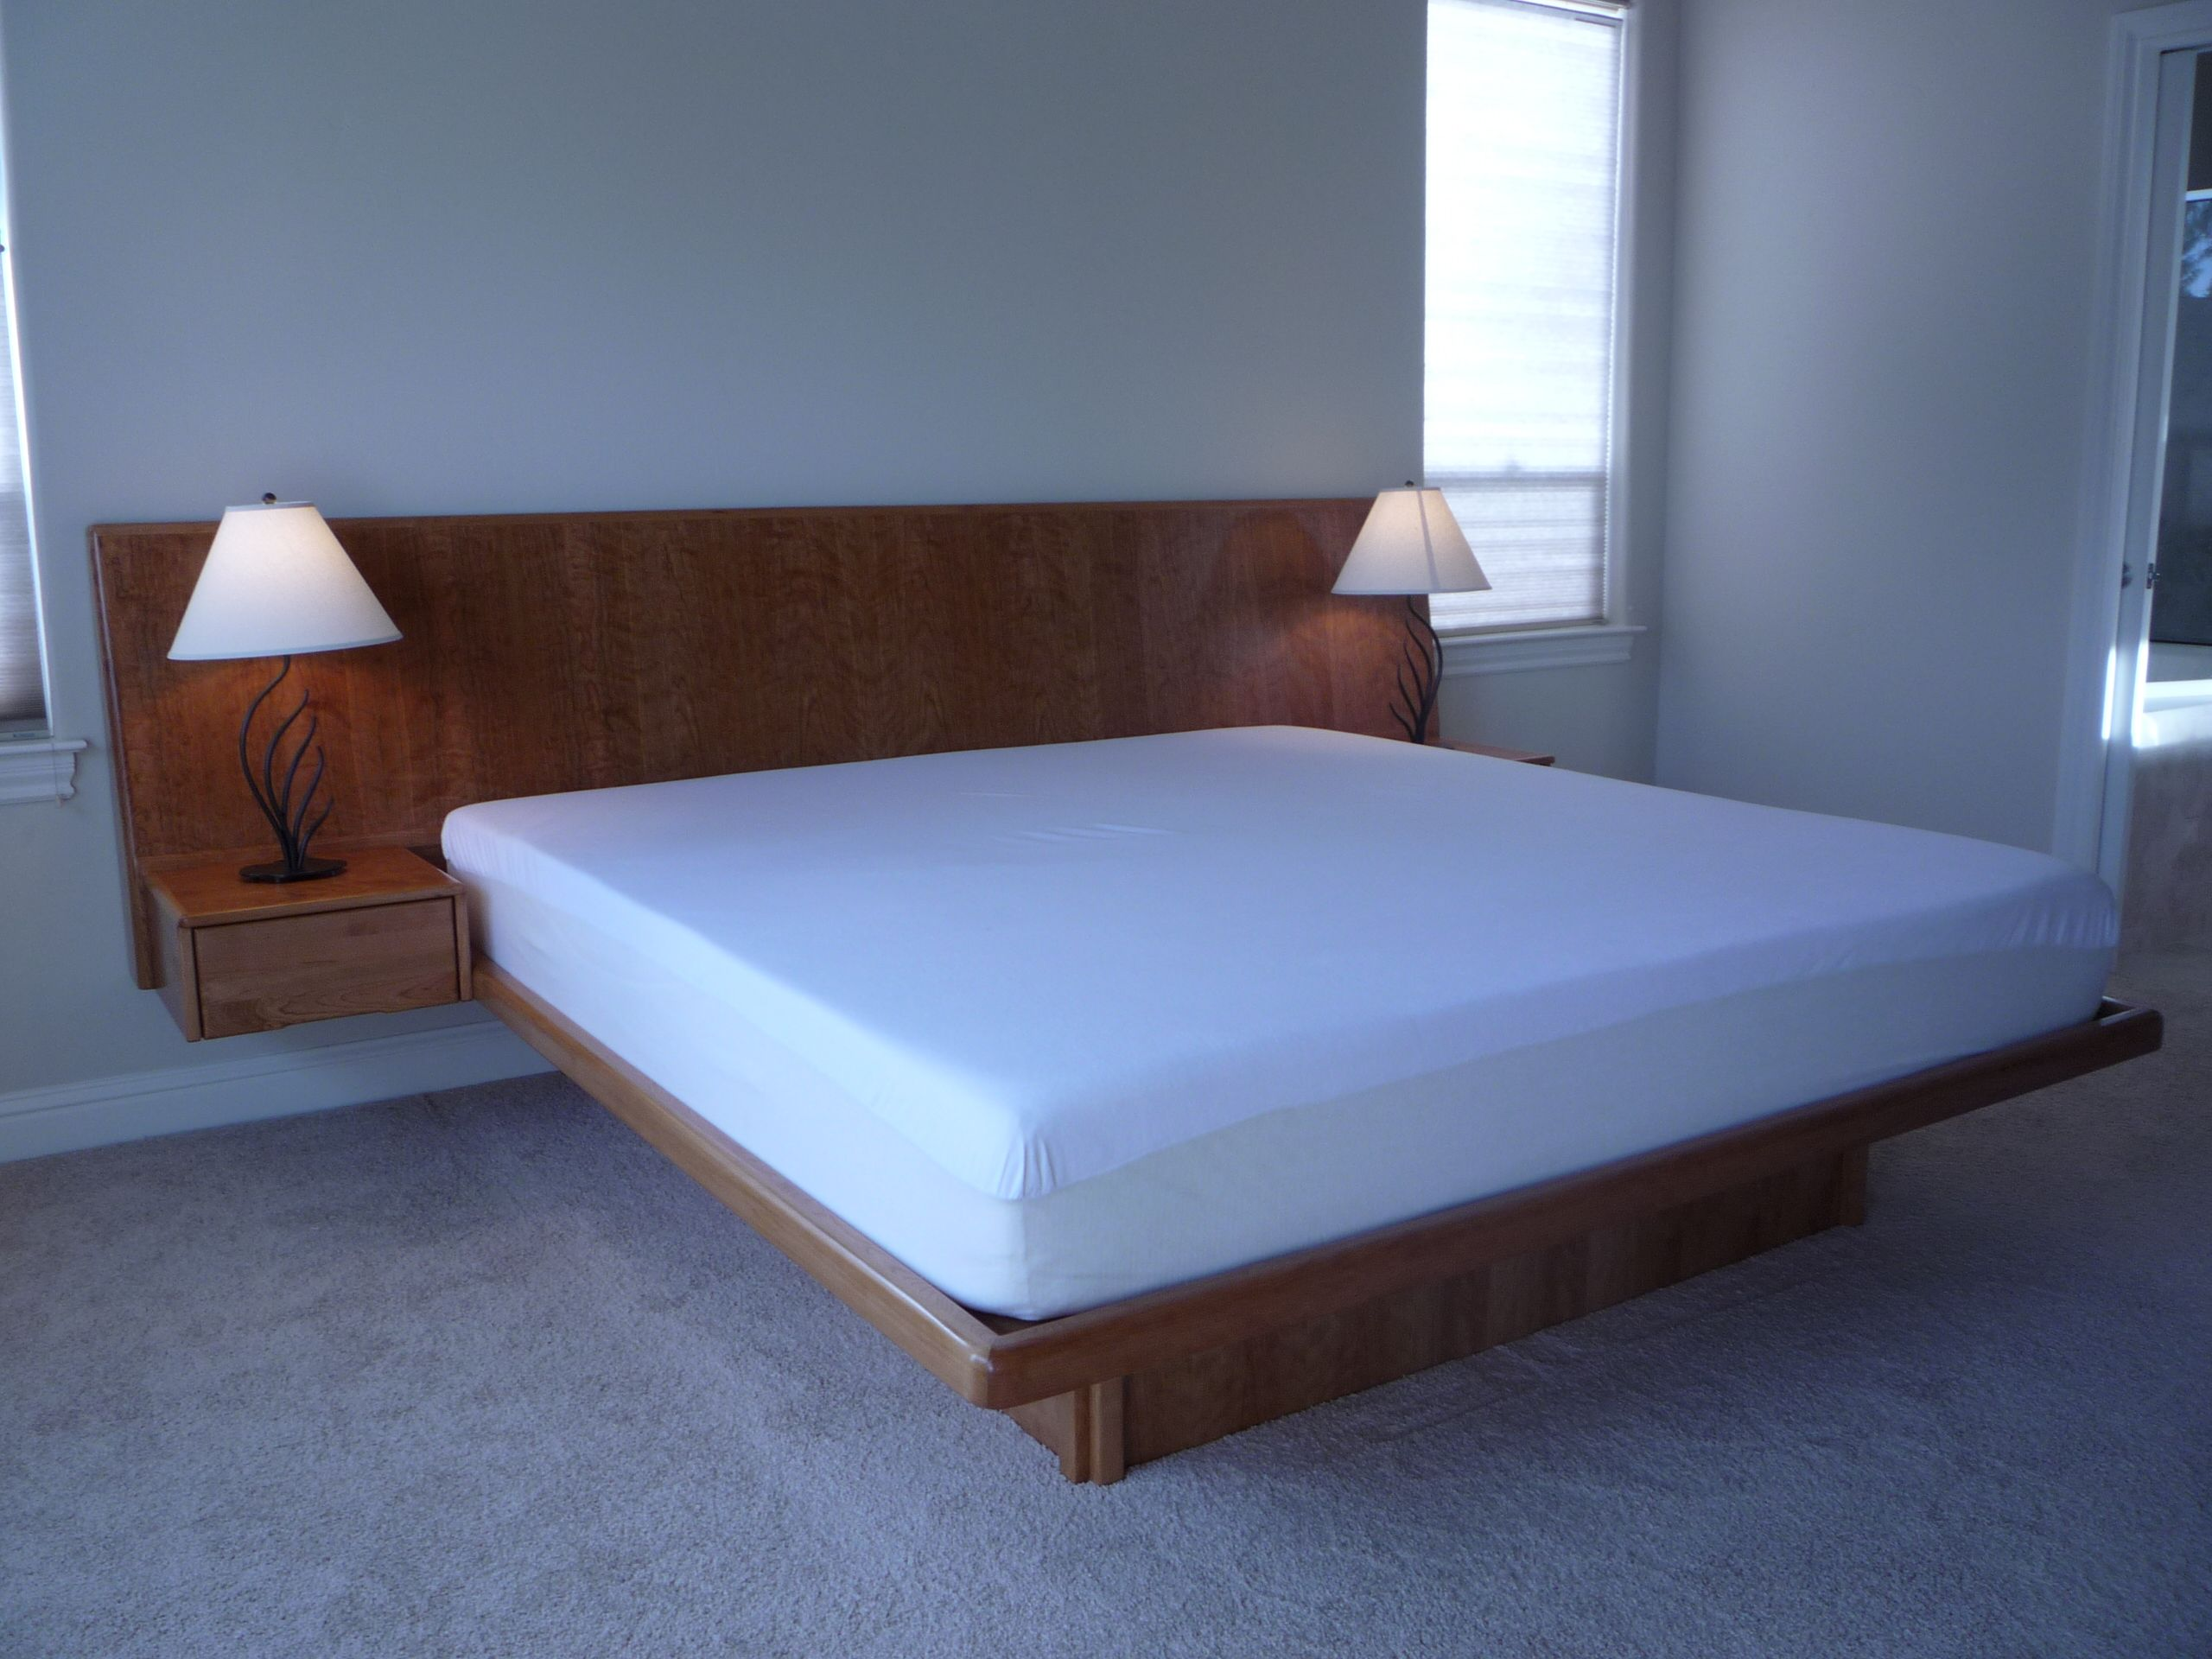 cherry floating platform bed with slant back headboard  decor  - cherry floating platform bed with slant back headboard